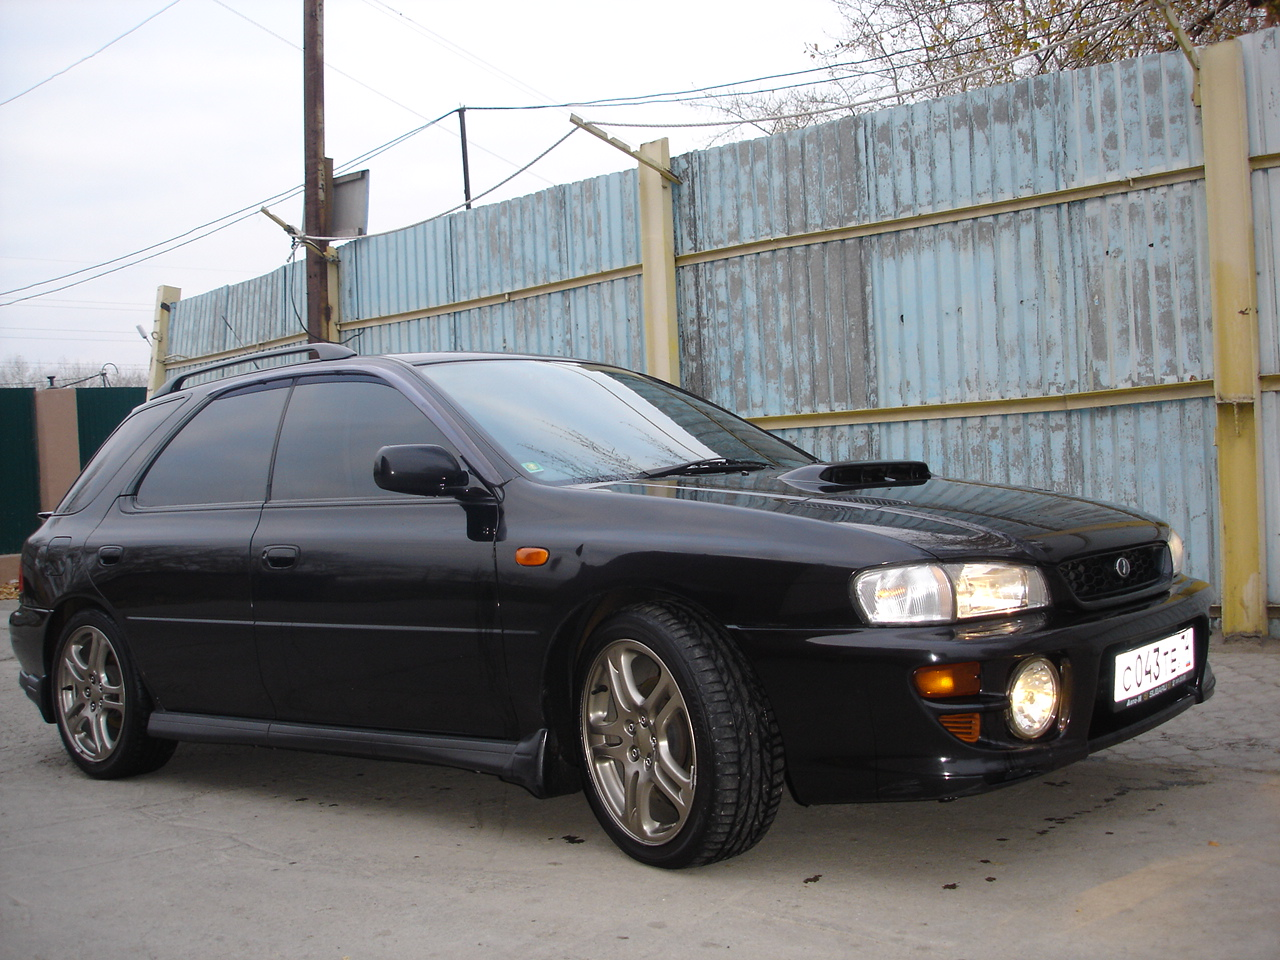 1998 subaru impreza wrx pictures 2000cc gasoline manual for sale. Black Bedroom Furniture Sets. Home Design Ideas